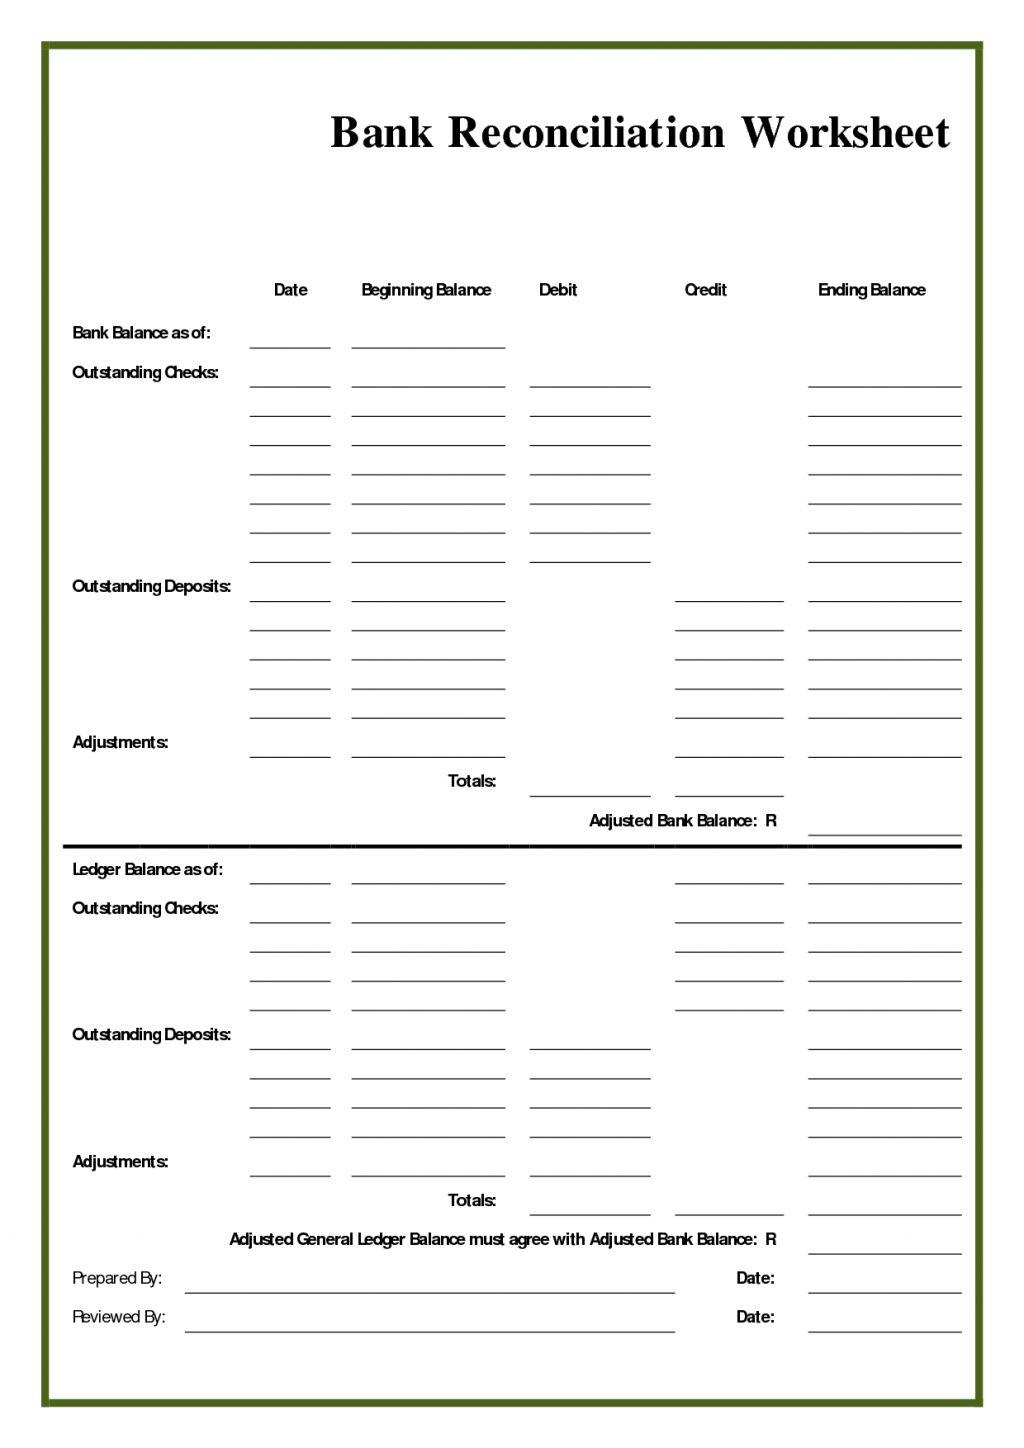 The Bank Reconciliation Worksheet Template Is A Very